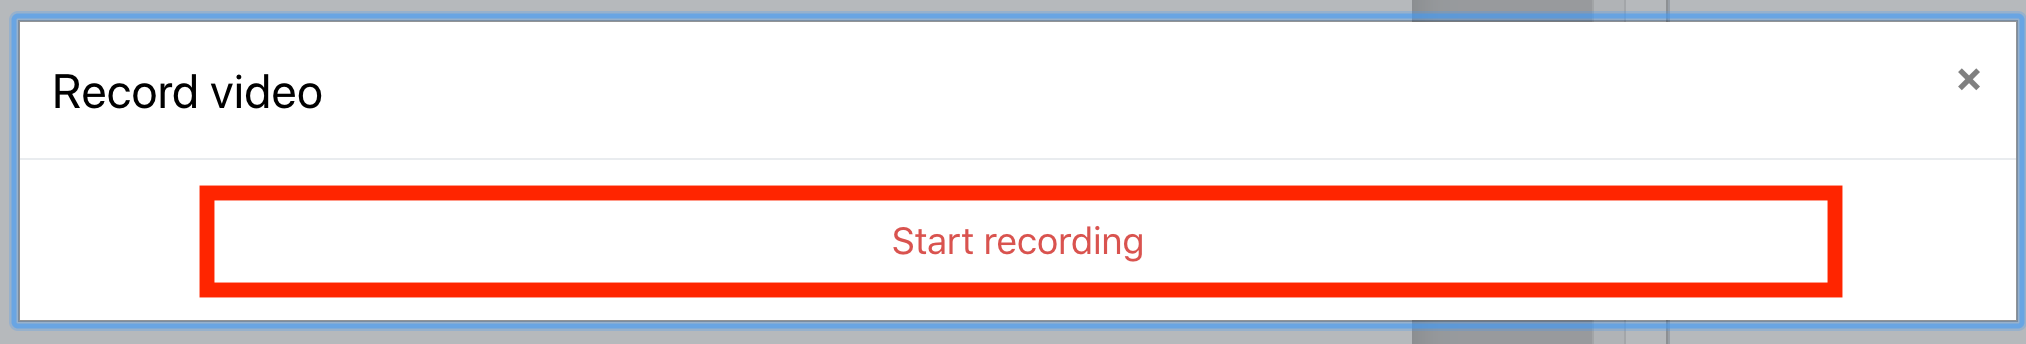 An image of the start recording button.